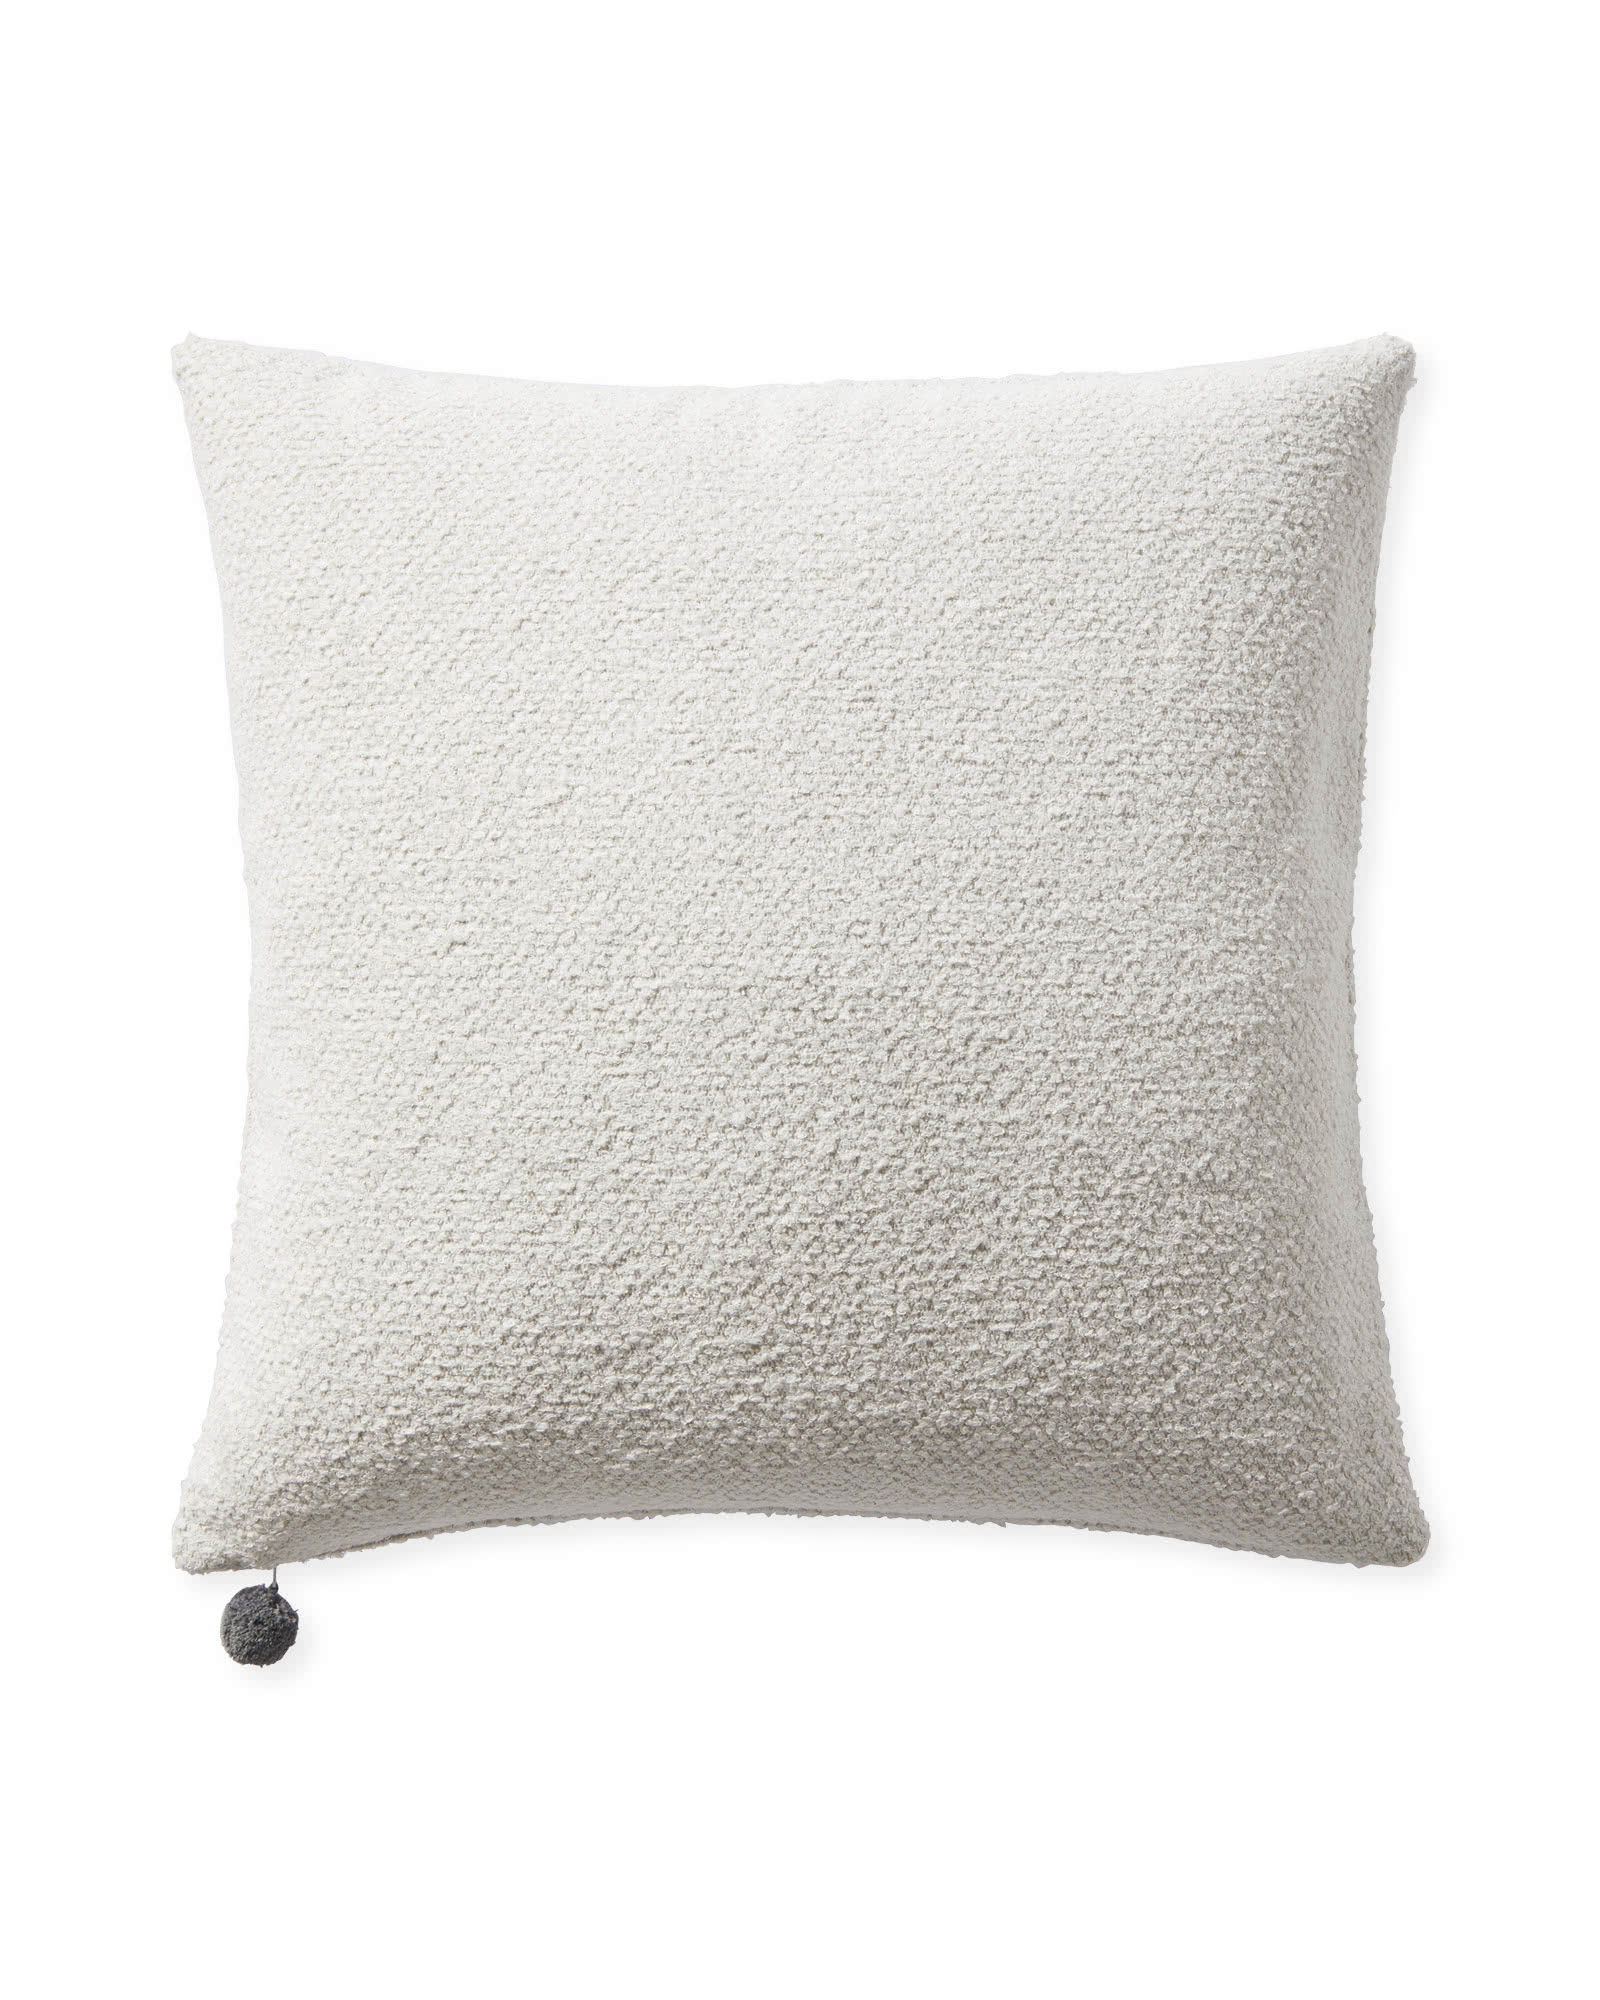 Perennials Performance Textured Loop Pillow Cover, Ivory